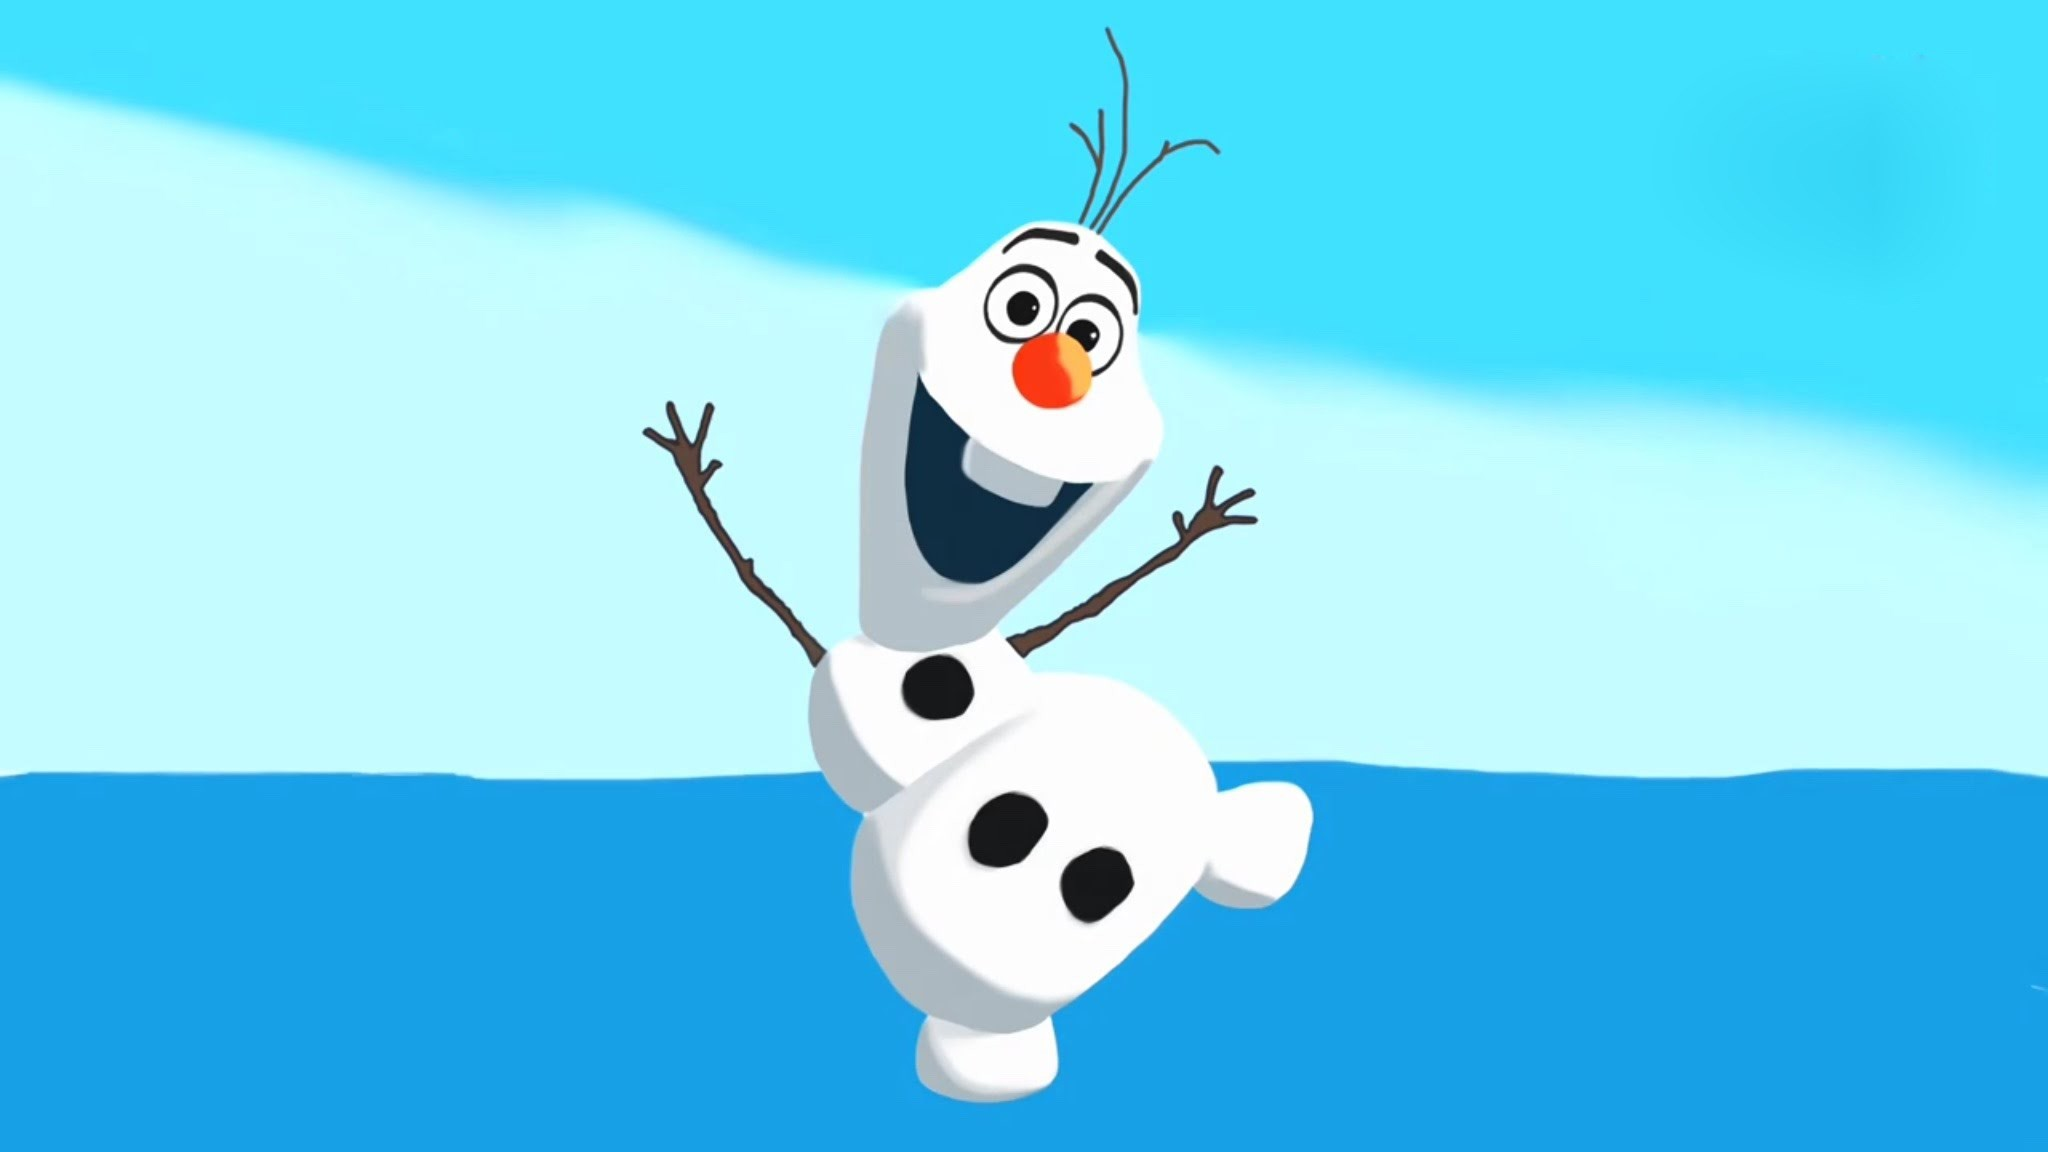 Cute Olaf Wallpapers (61+ Images